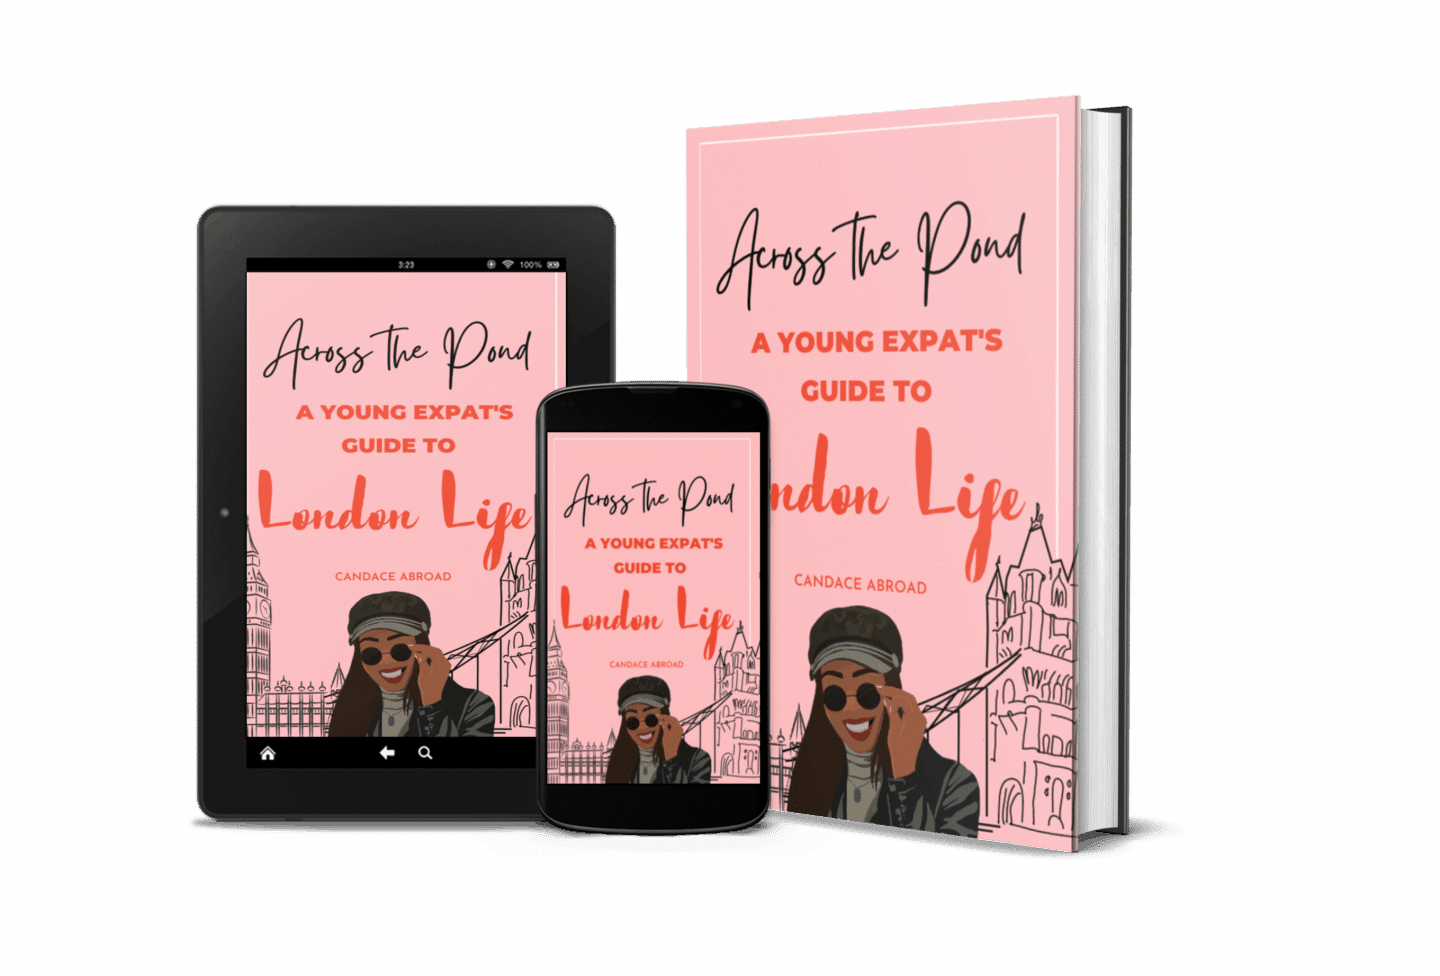 Across-the-pond-a-young-expats-guide-to-london-life